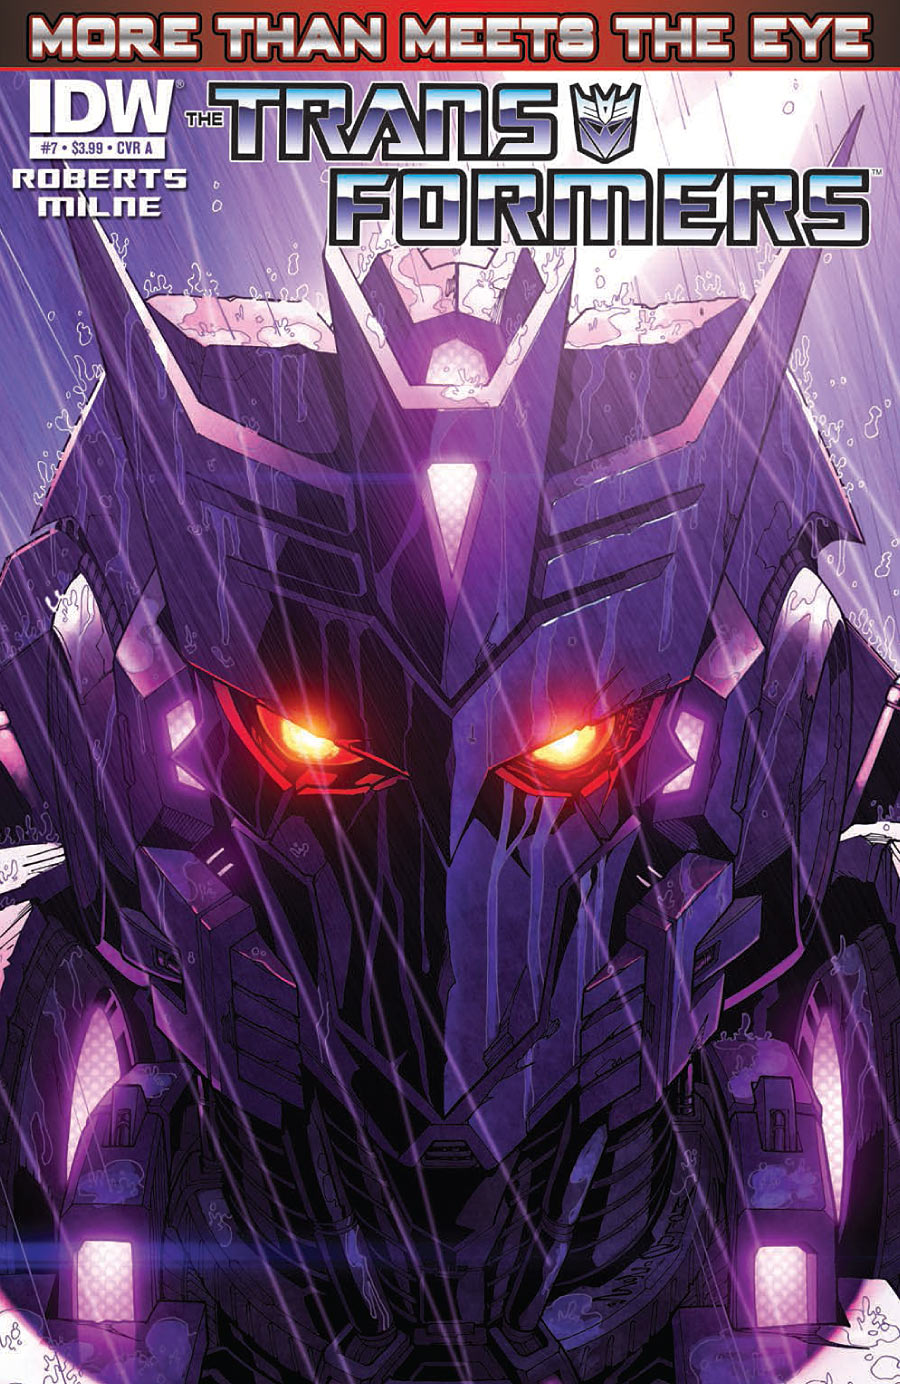 transformers-comics-more-than-meets-the-eye-issue-7-cover-a Transformers More Than Meets the Eye #7